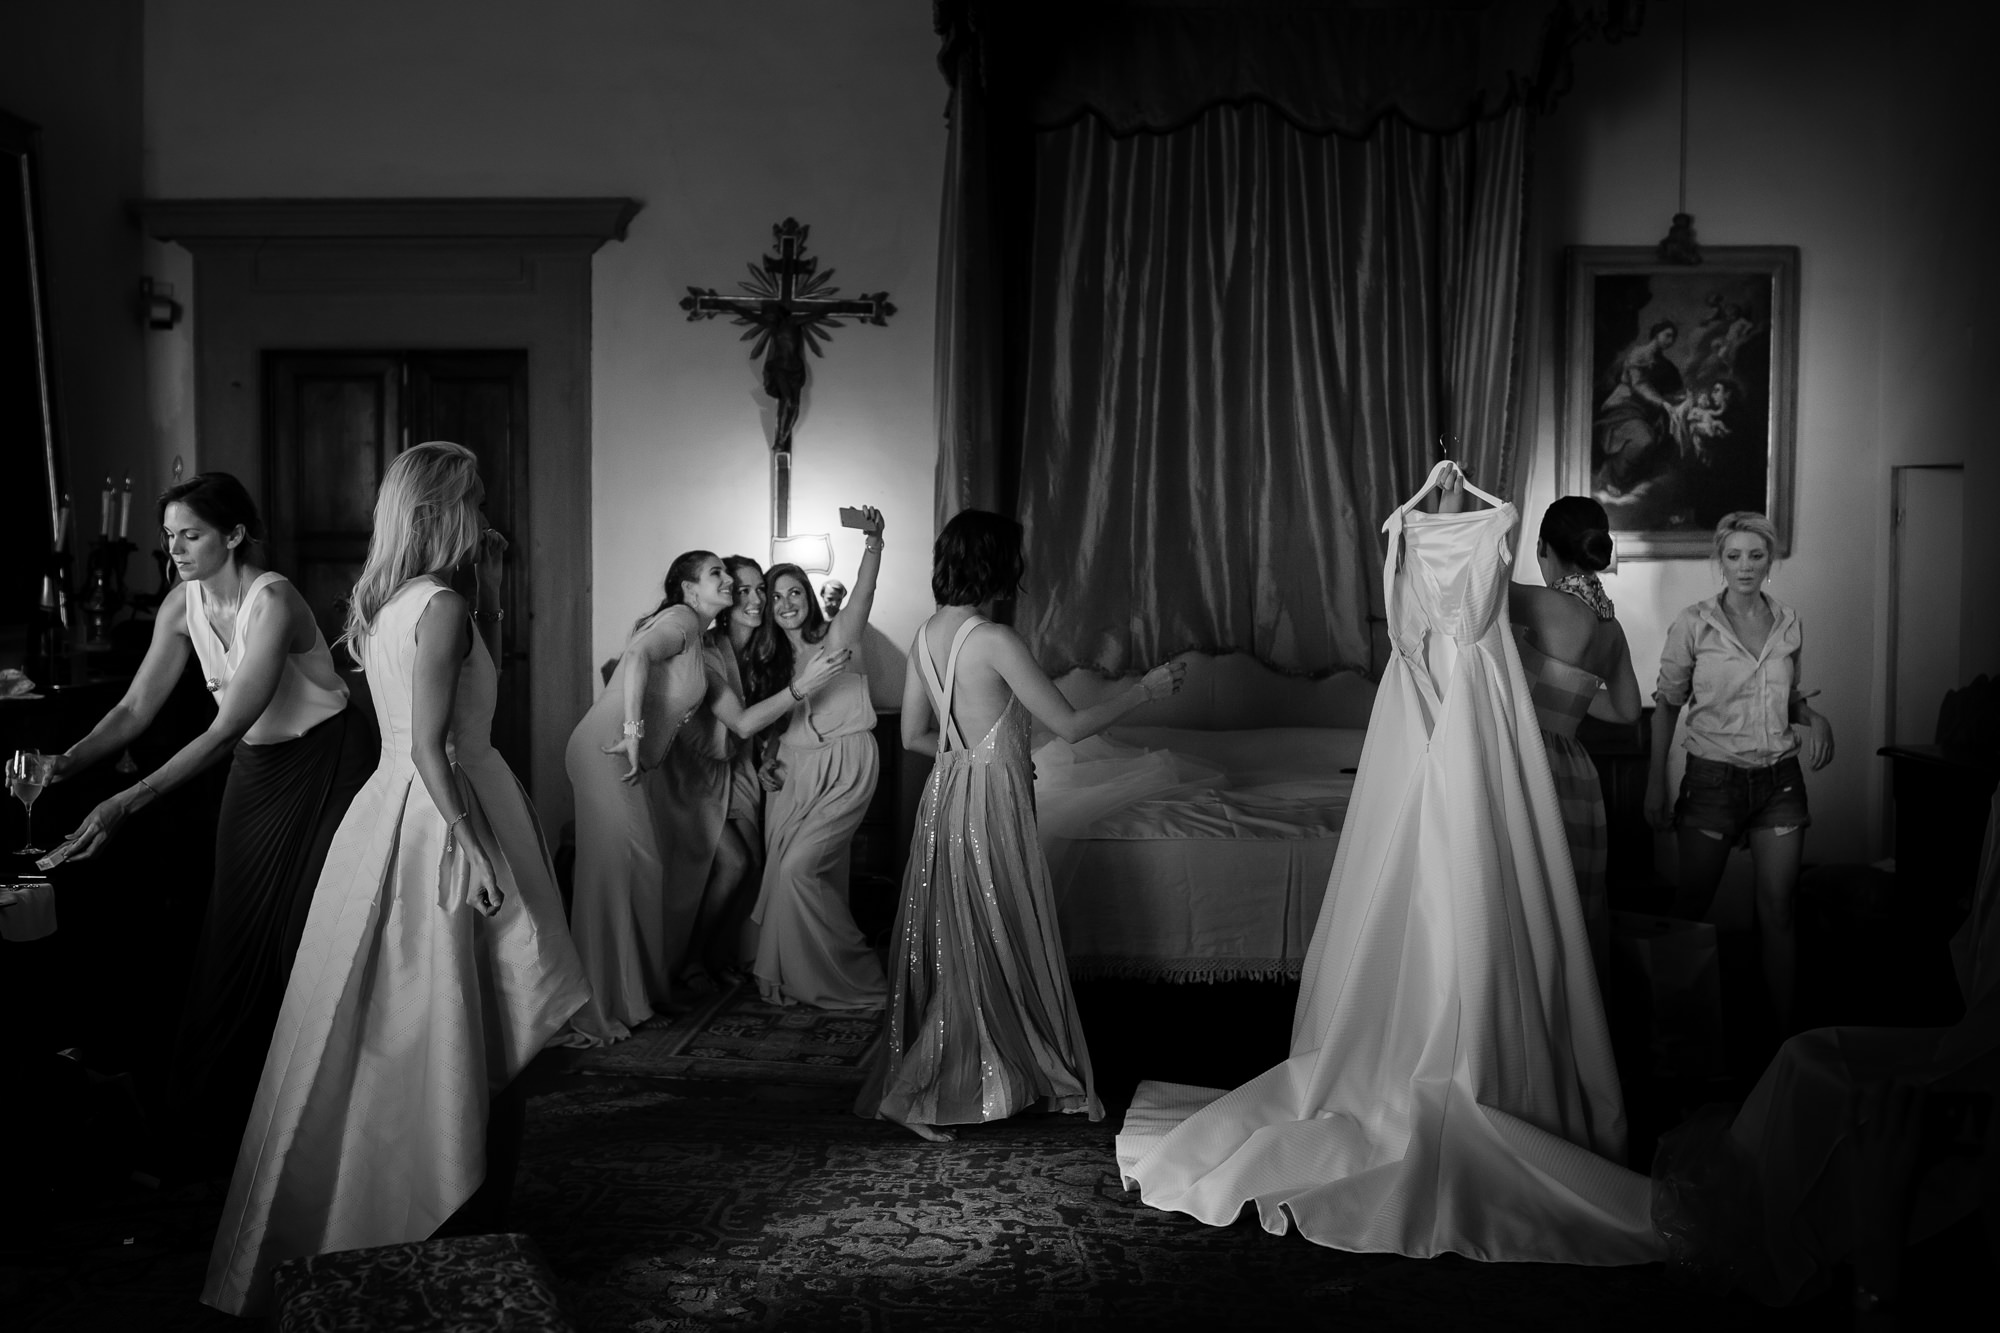 Documentary photo of bridesmaids and bride getting ready by David Bastianoni